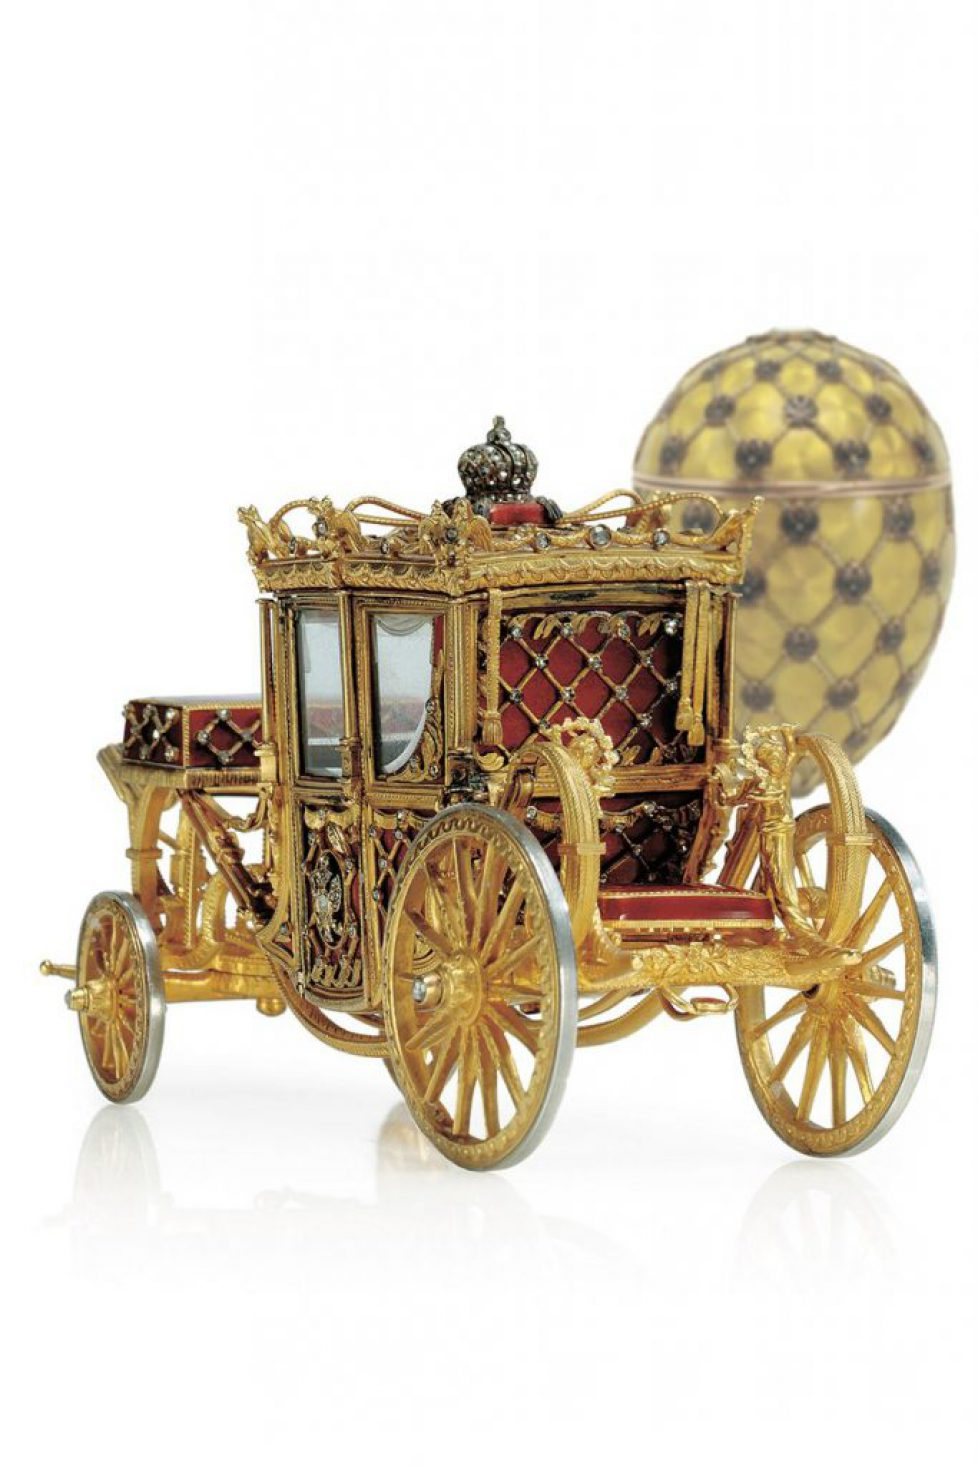 Imperial-Coronation-Easter-Egg-tatler-18jun15_Faberge-Museum-in-St-Petersbourg--The-Link-of-Times-Foundation_b